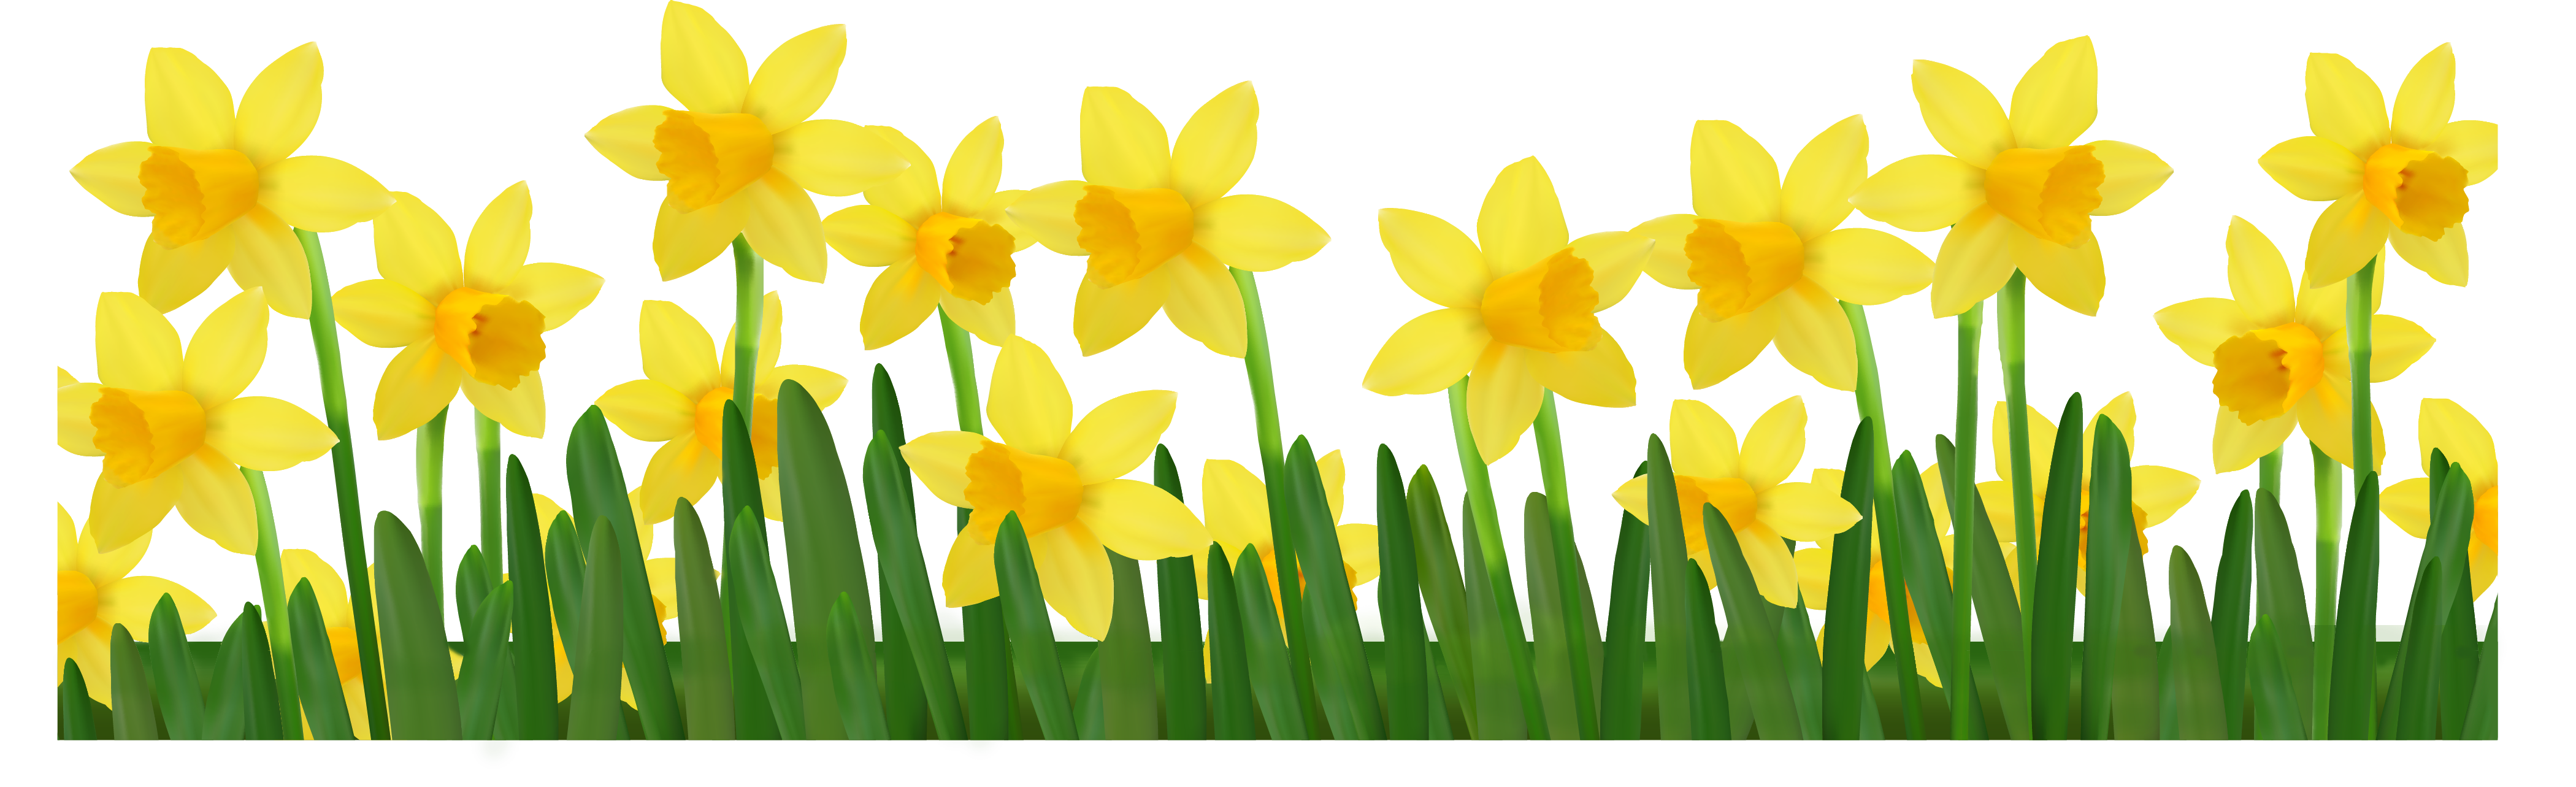 Grass With Daffodils Png Clipart Picture